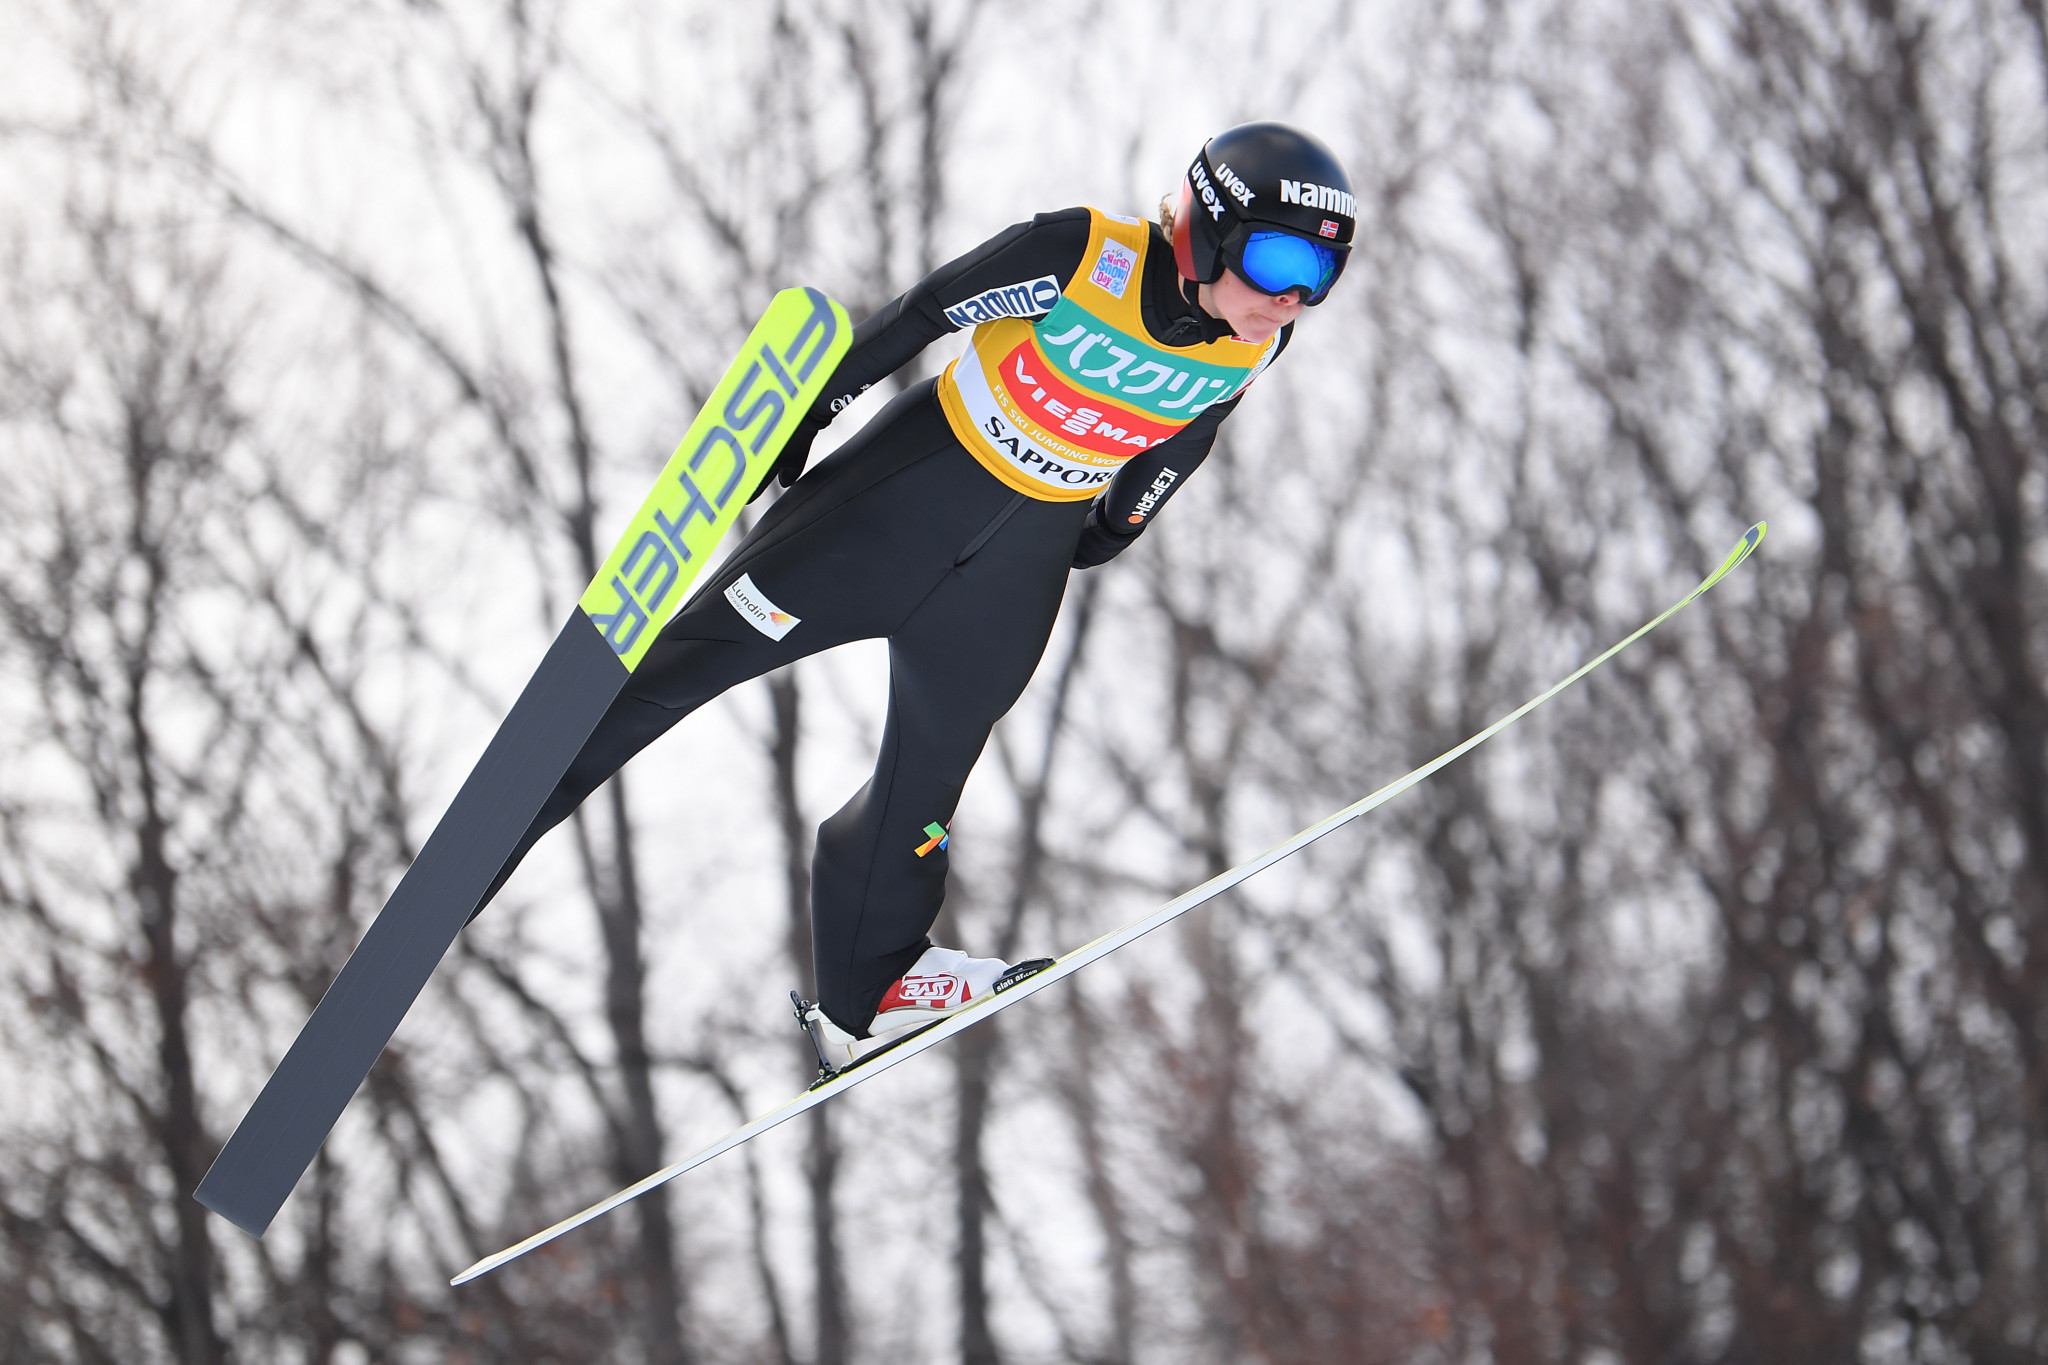 Lundby regains advantage in FIS Ski Jumping World Cup